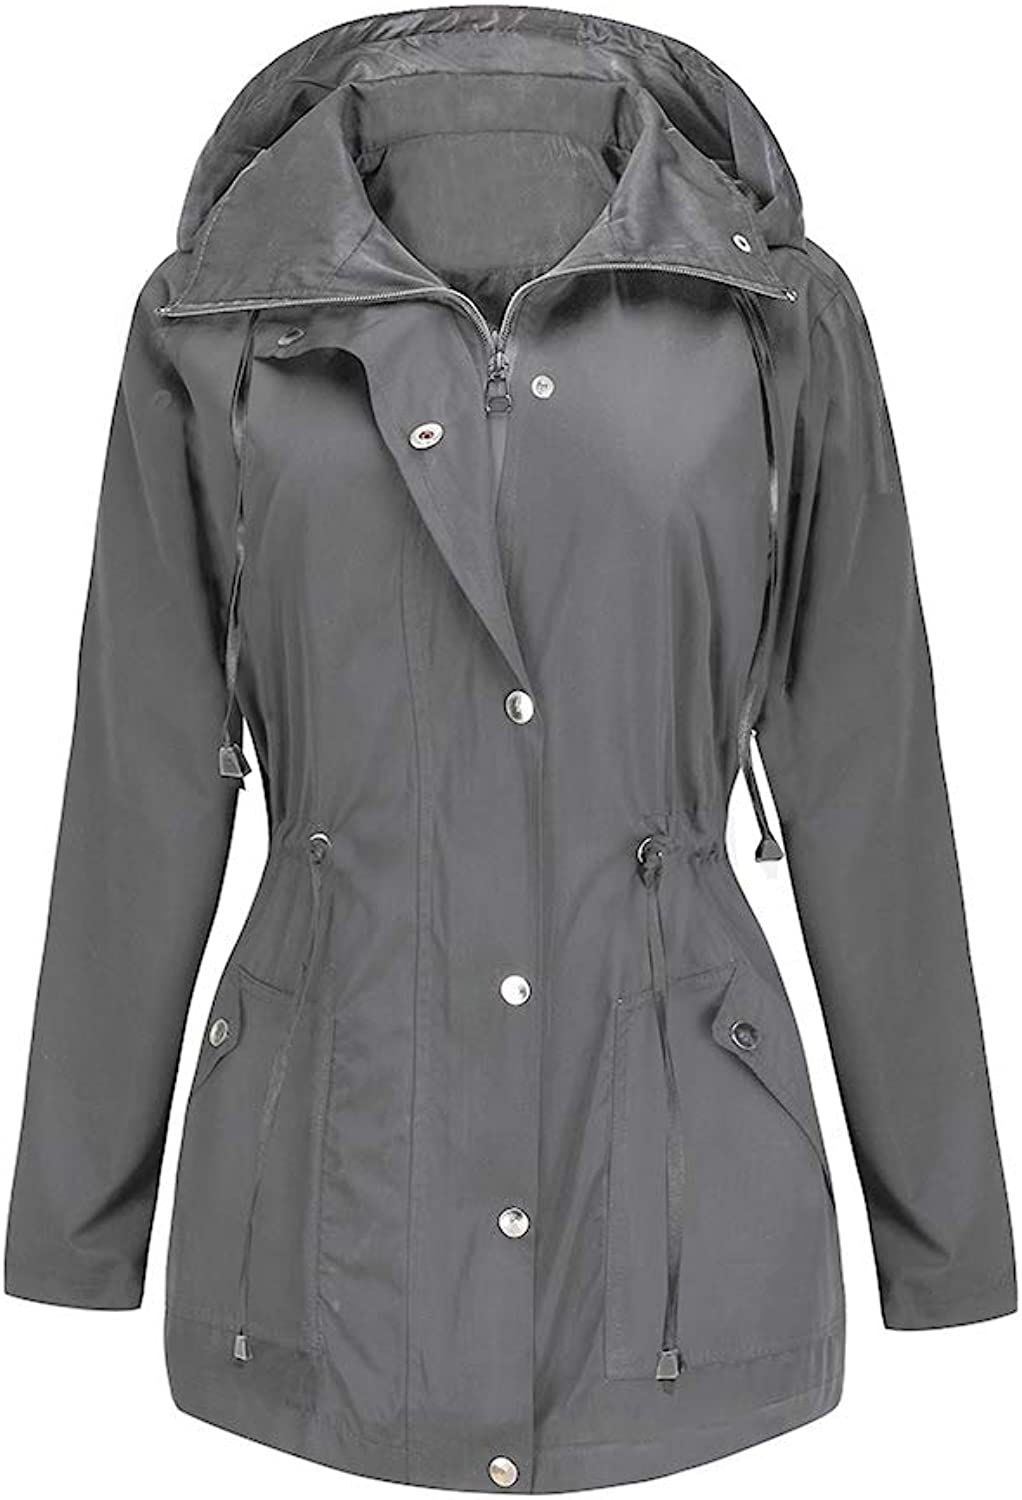 BBX Lephsnt Rain Jacket Women Waterproof with Hood Lightweight Raincoat Outdoor Windbreaker